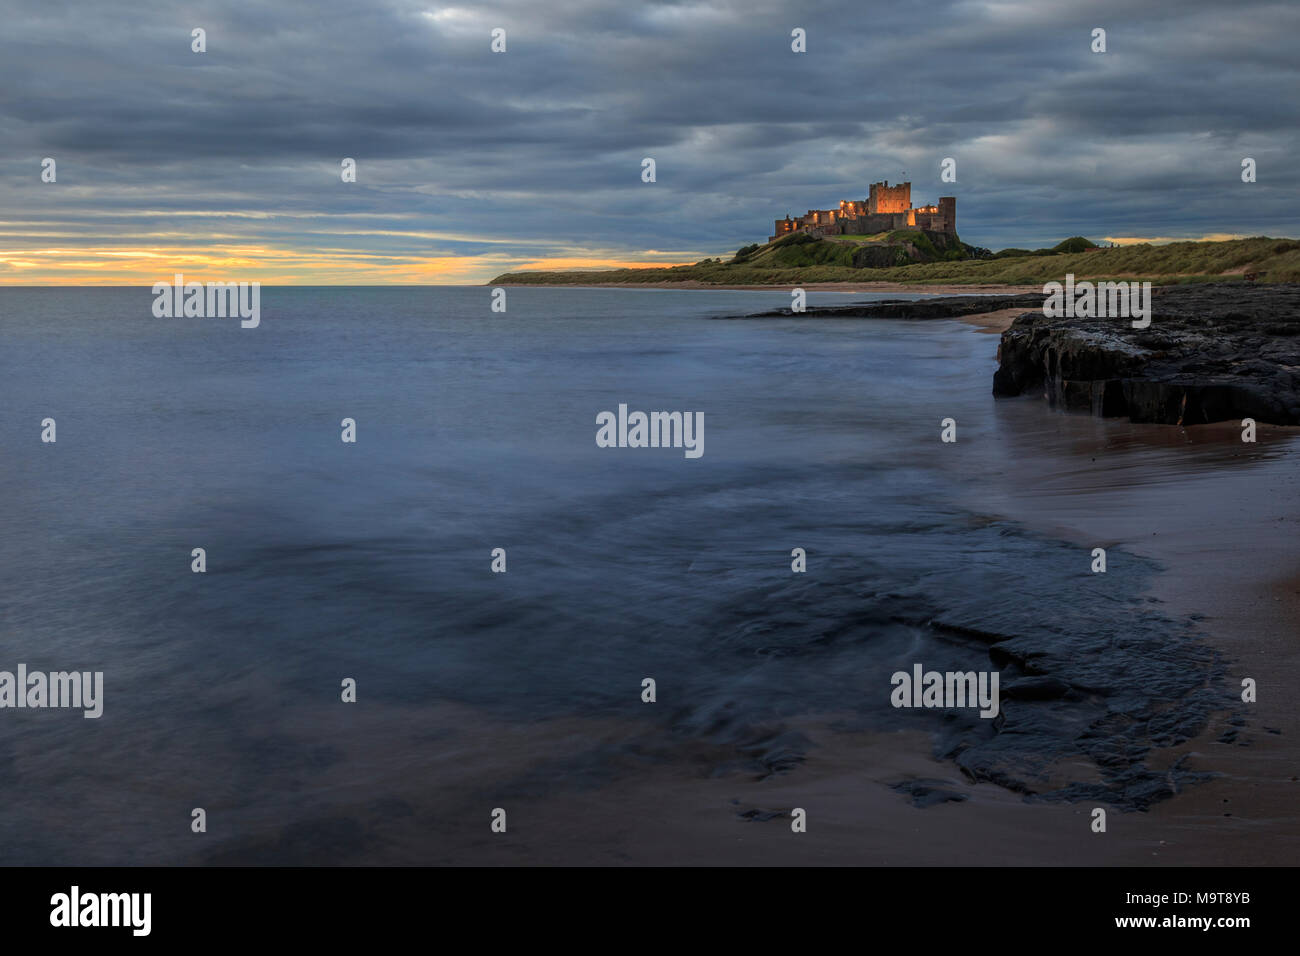 Bamburgh castle sunrise on the Northumberland coastline - Stock Image